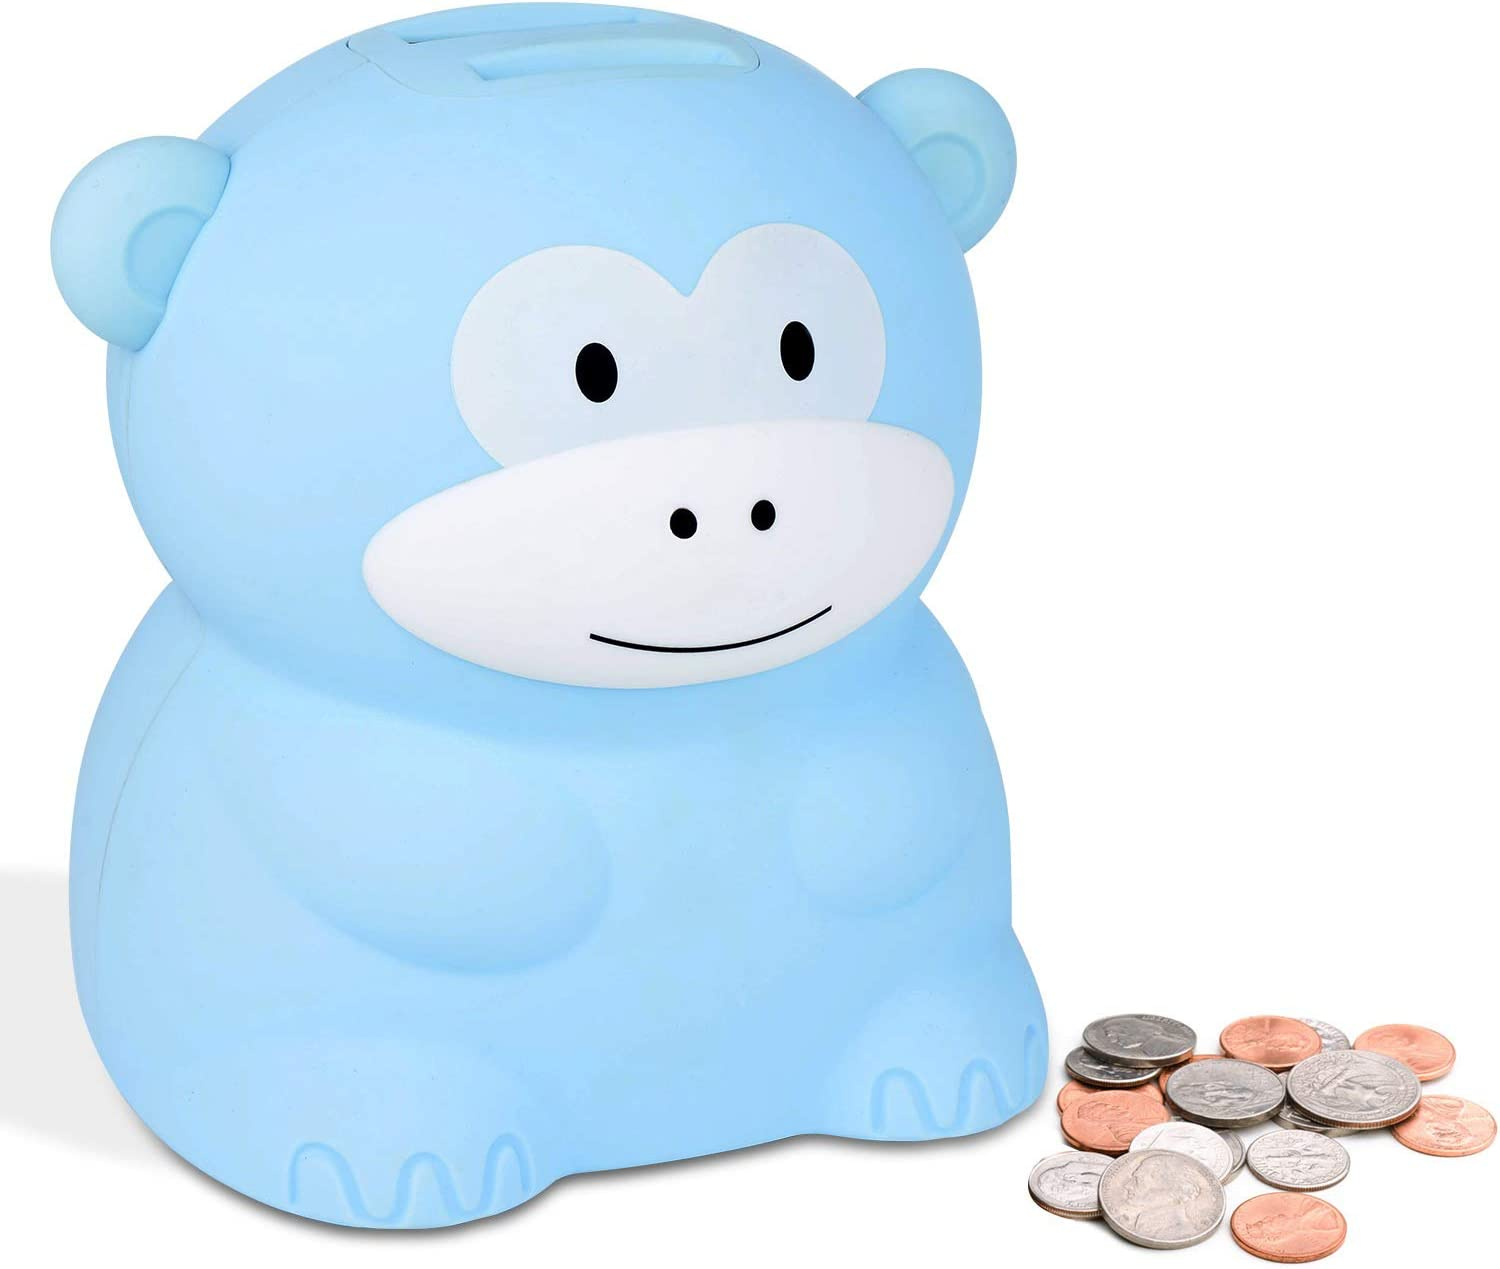 Lefree Kids Coin Bank,Digital Piggy Bankwith LCD Display for Children or Friends,Powered by 2 AA Battery (Not Included),Adorable Money Counting Coin Bank(Blue Monkey,US)